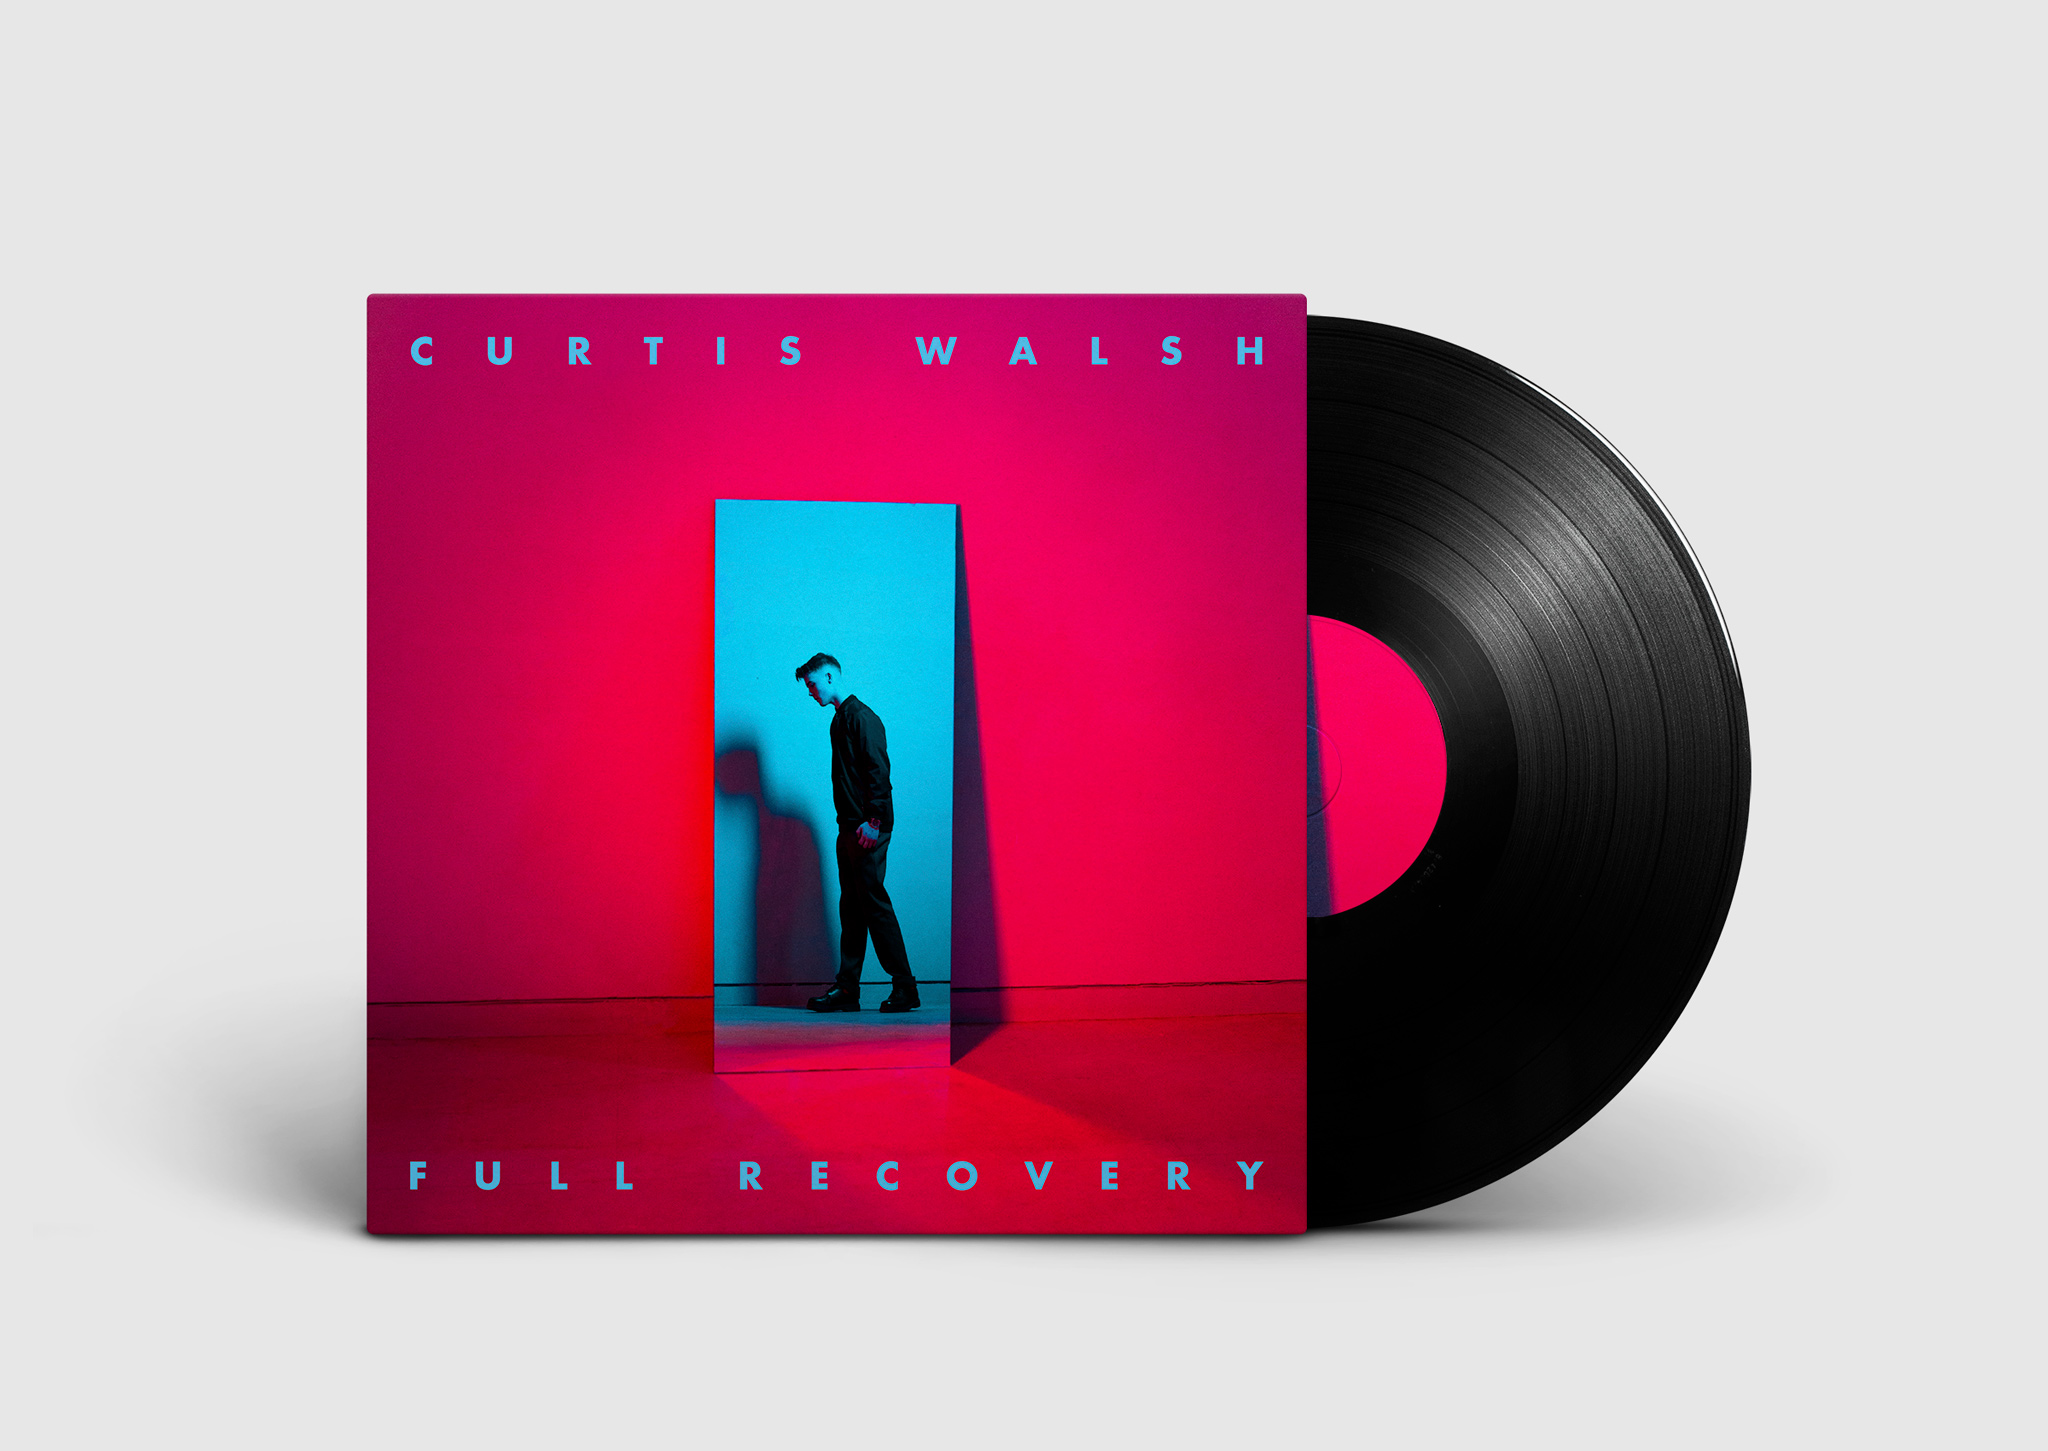 curtis-walsh-full-recovery-lp-sleeve